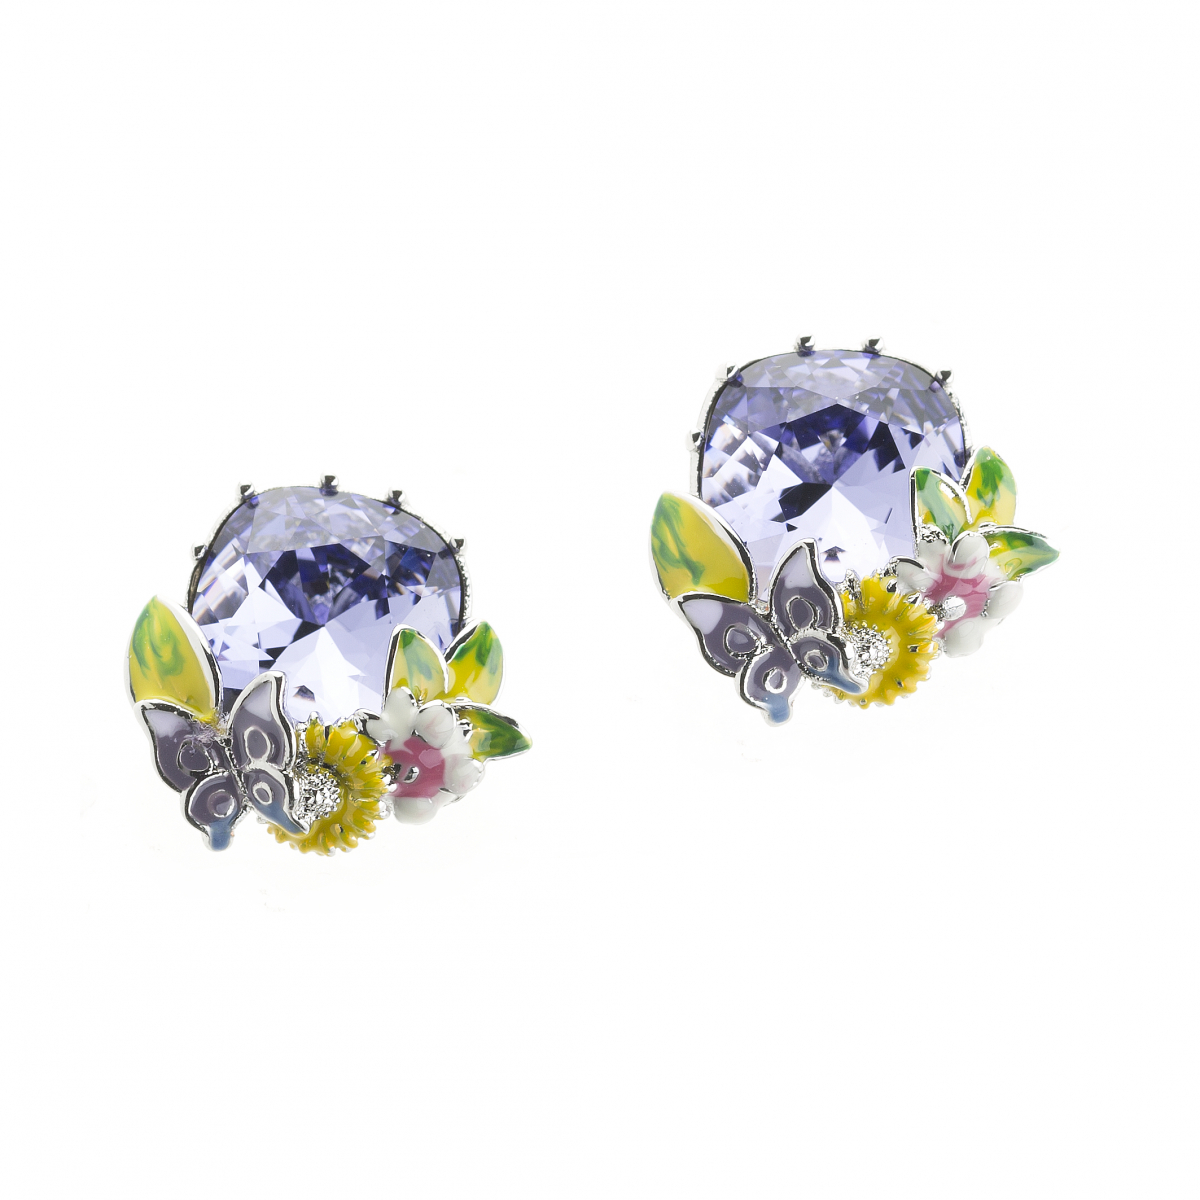 Scenes of Nature Earrings - Violet